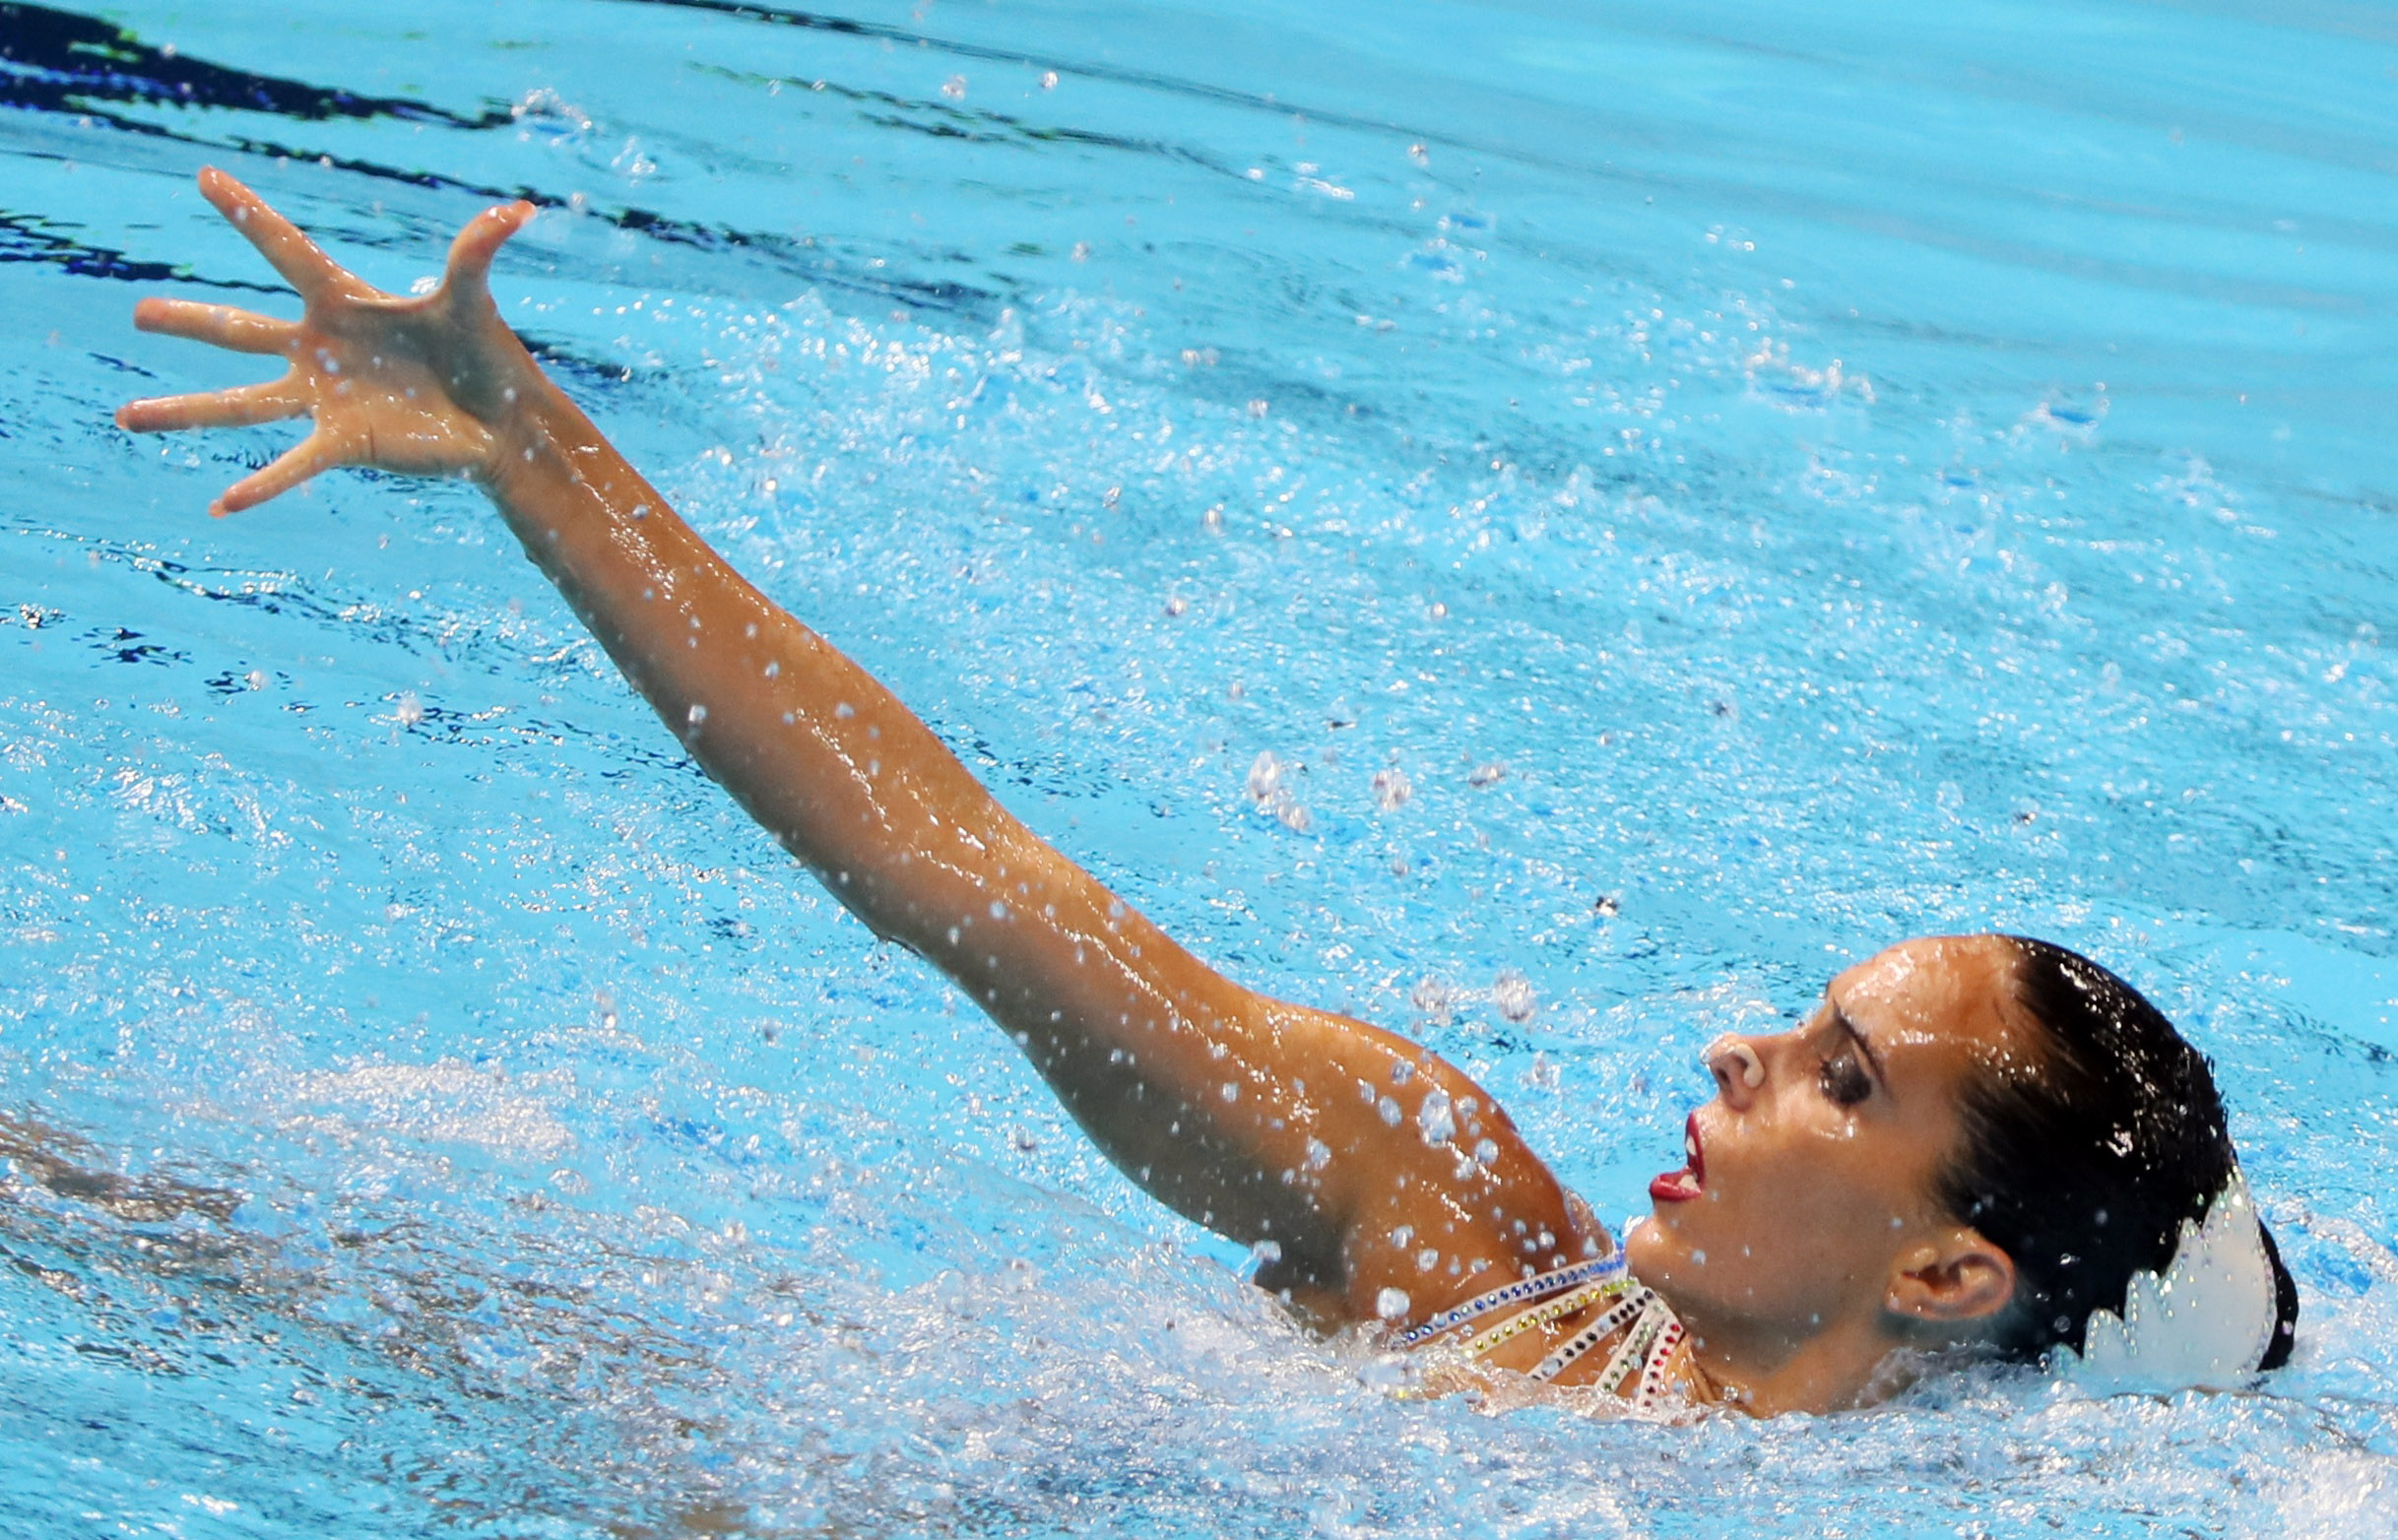 Swimming - 18th FINA World Swimming Championships - Solo Technical Final - Yeomju Gymnasium, South Korea - July 13, 2019. Ona Carbonell of Spain competes. REUTERS/Evgenia Novozhenina